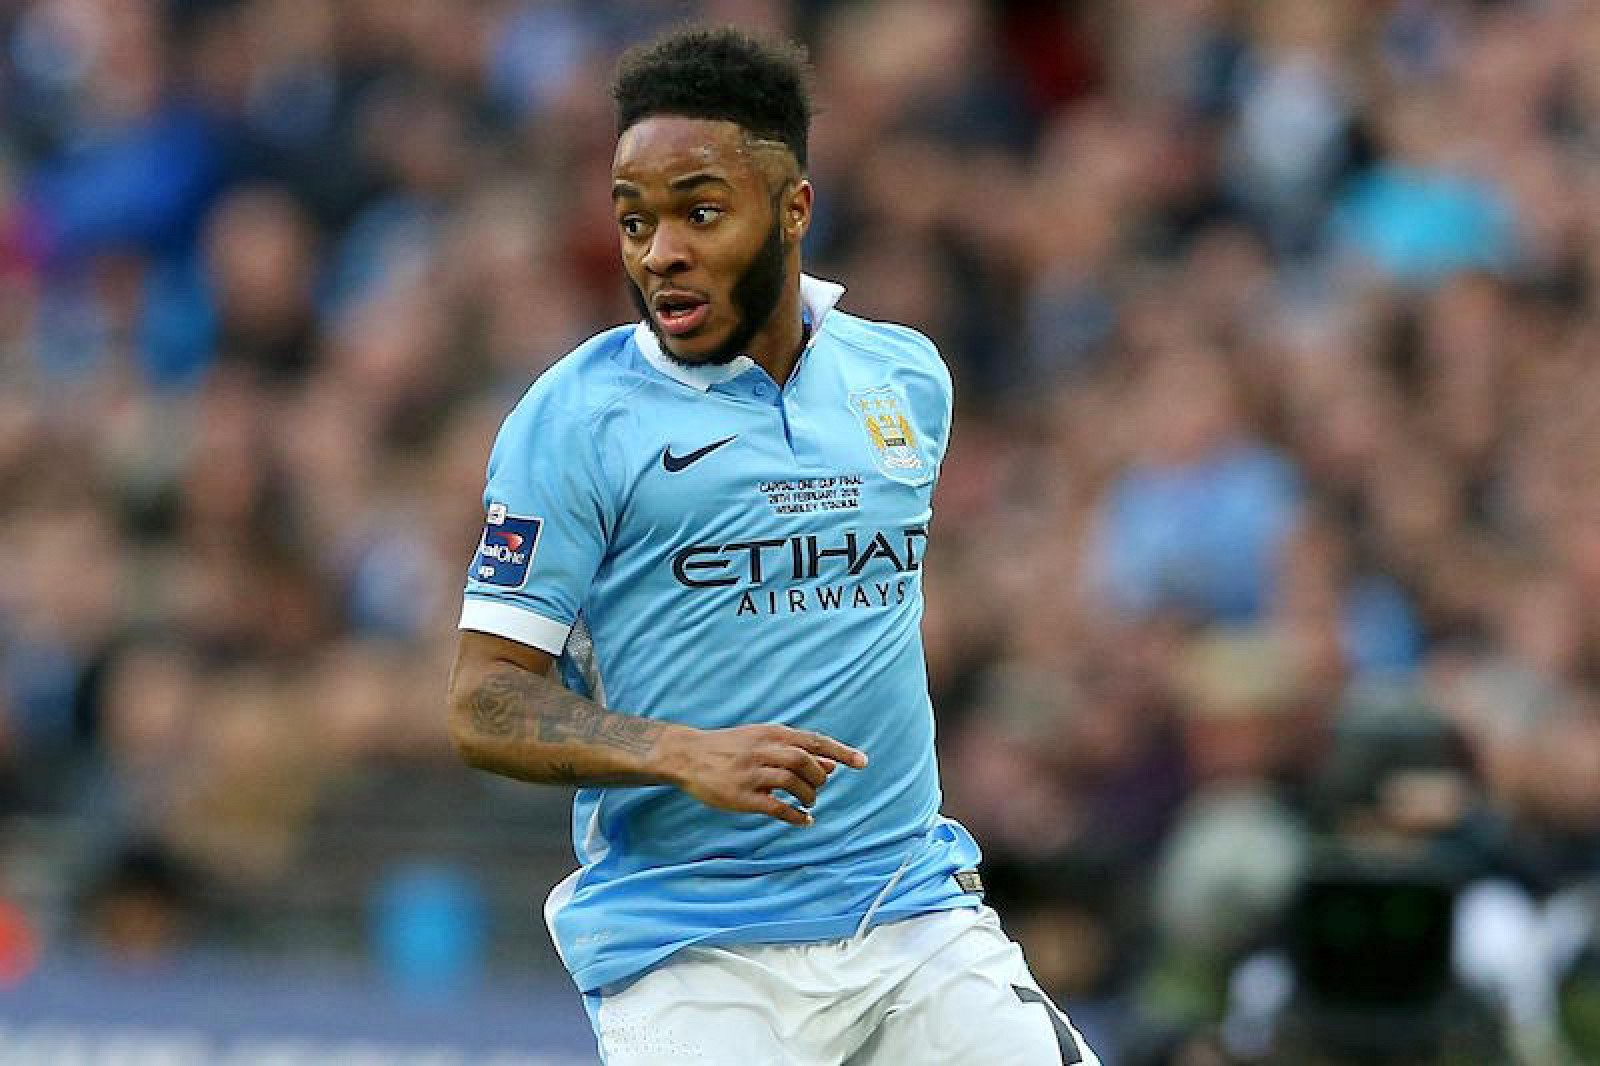 Apple to Sign England s Raheem Sterling as Global Ambassador Mac